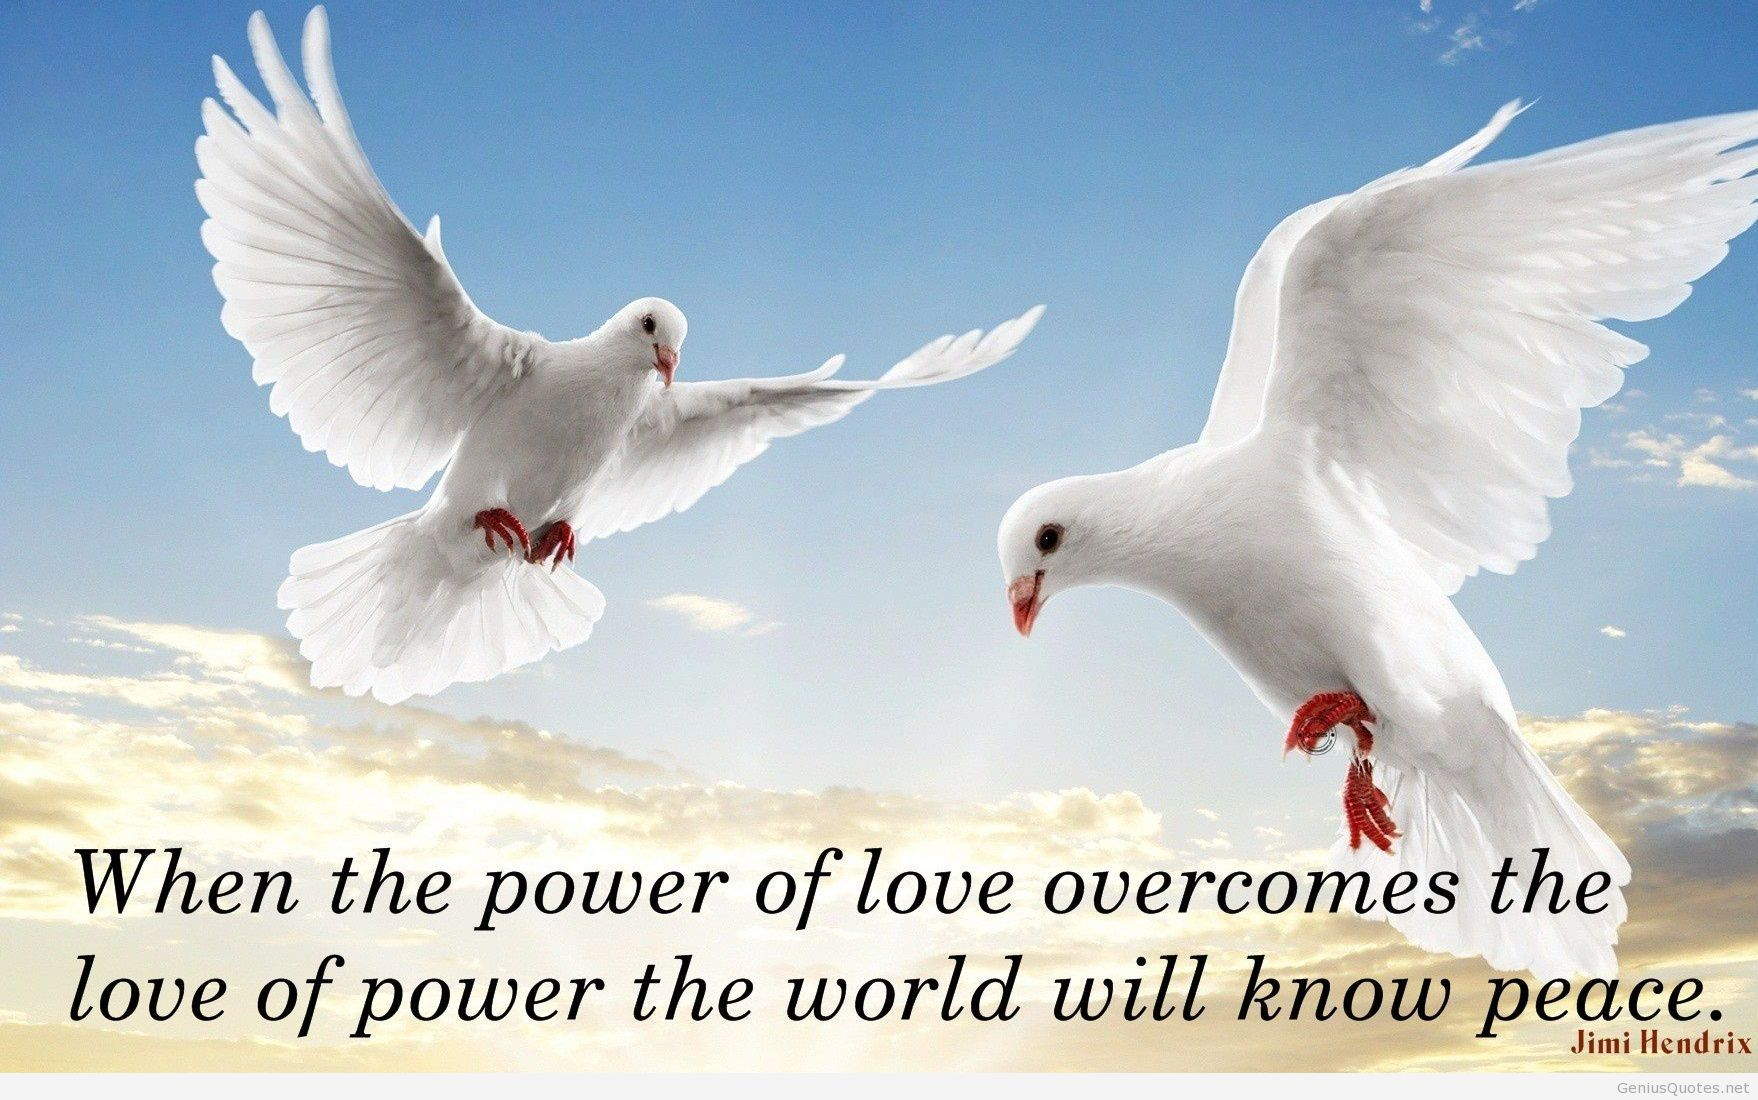 Quotes On Peace And Love Beauteous Peace Is The Highest Form Disclpine Quote .of Power The World